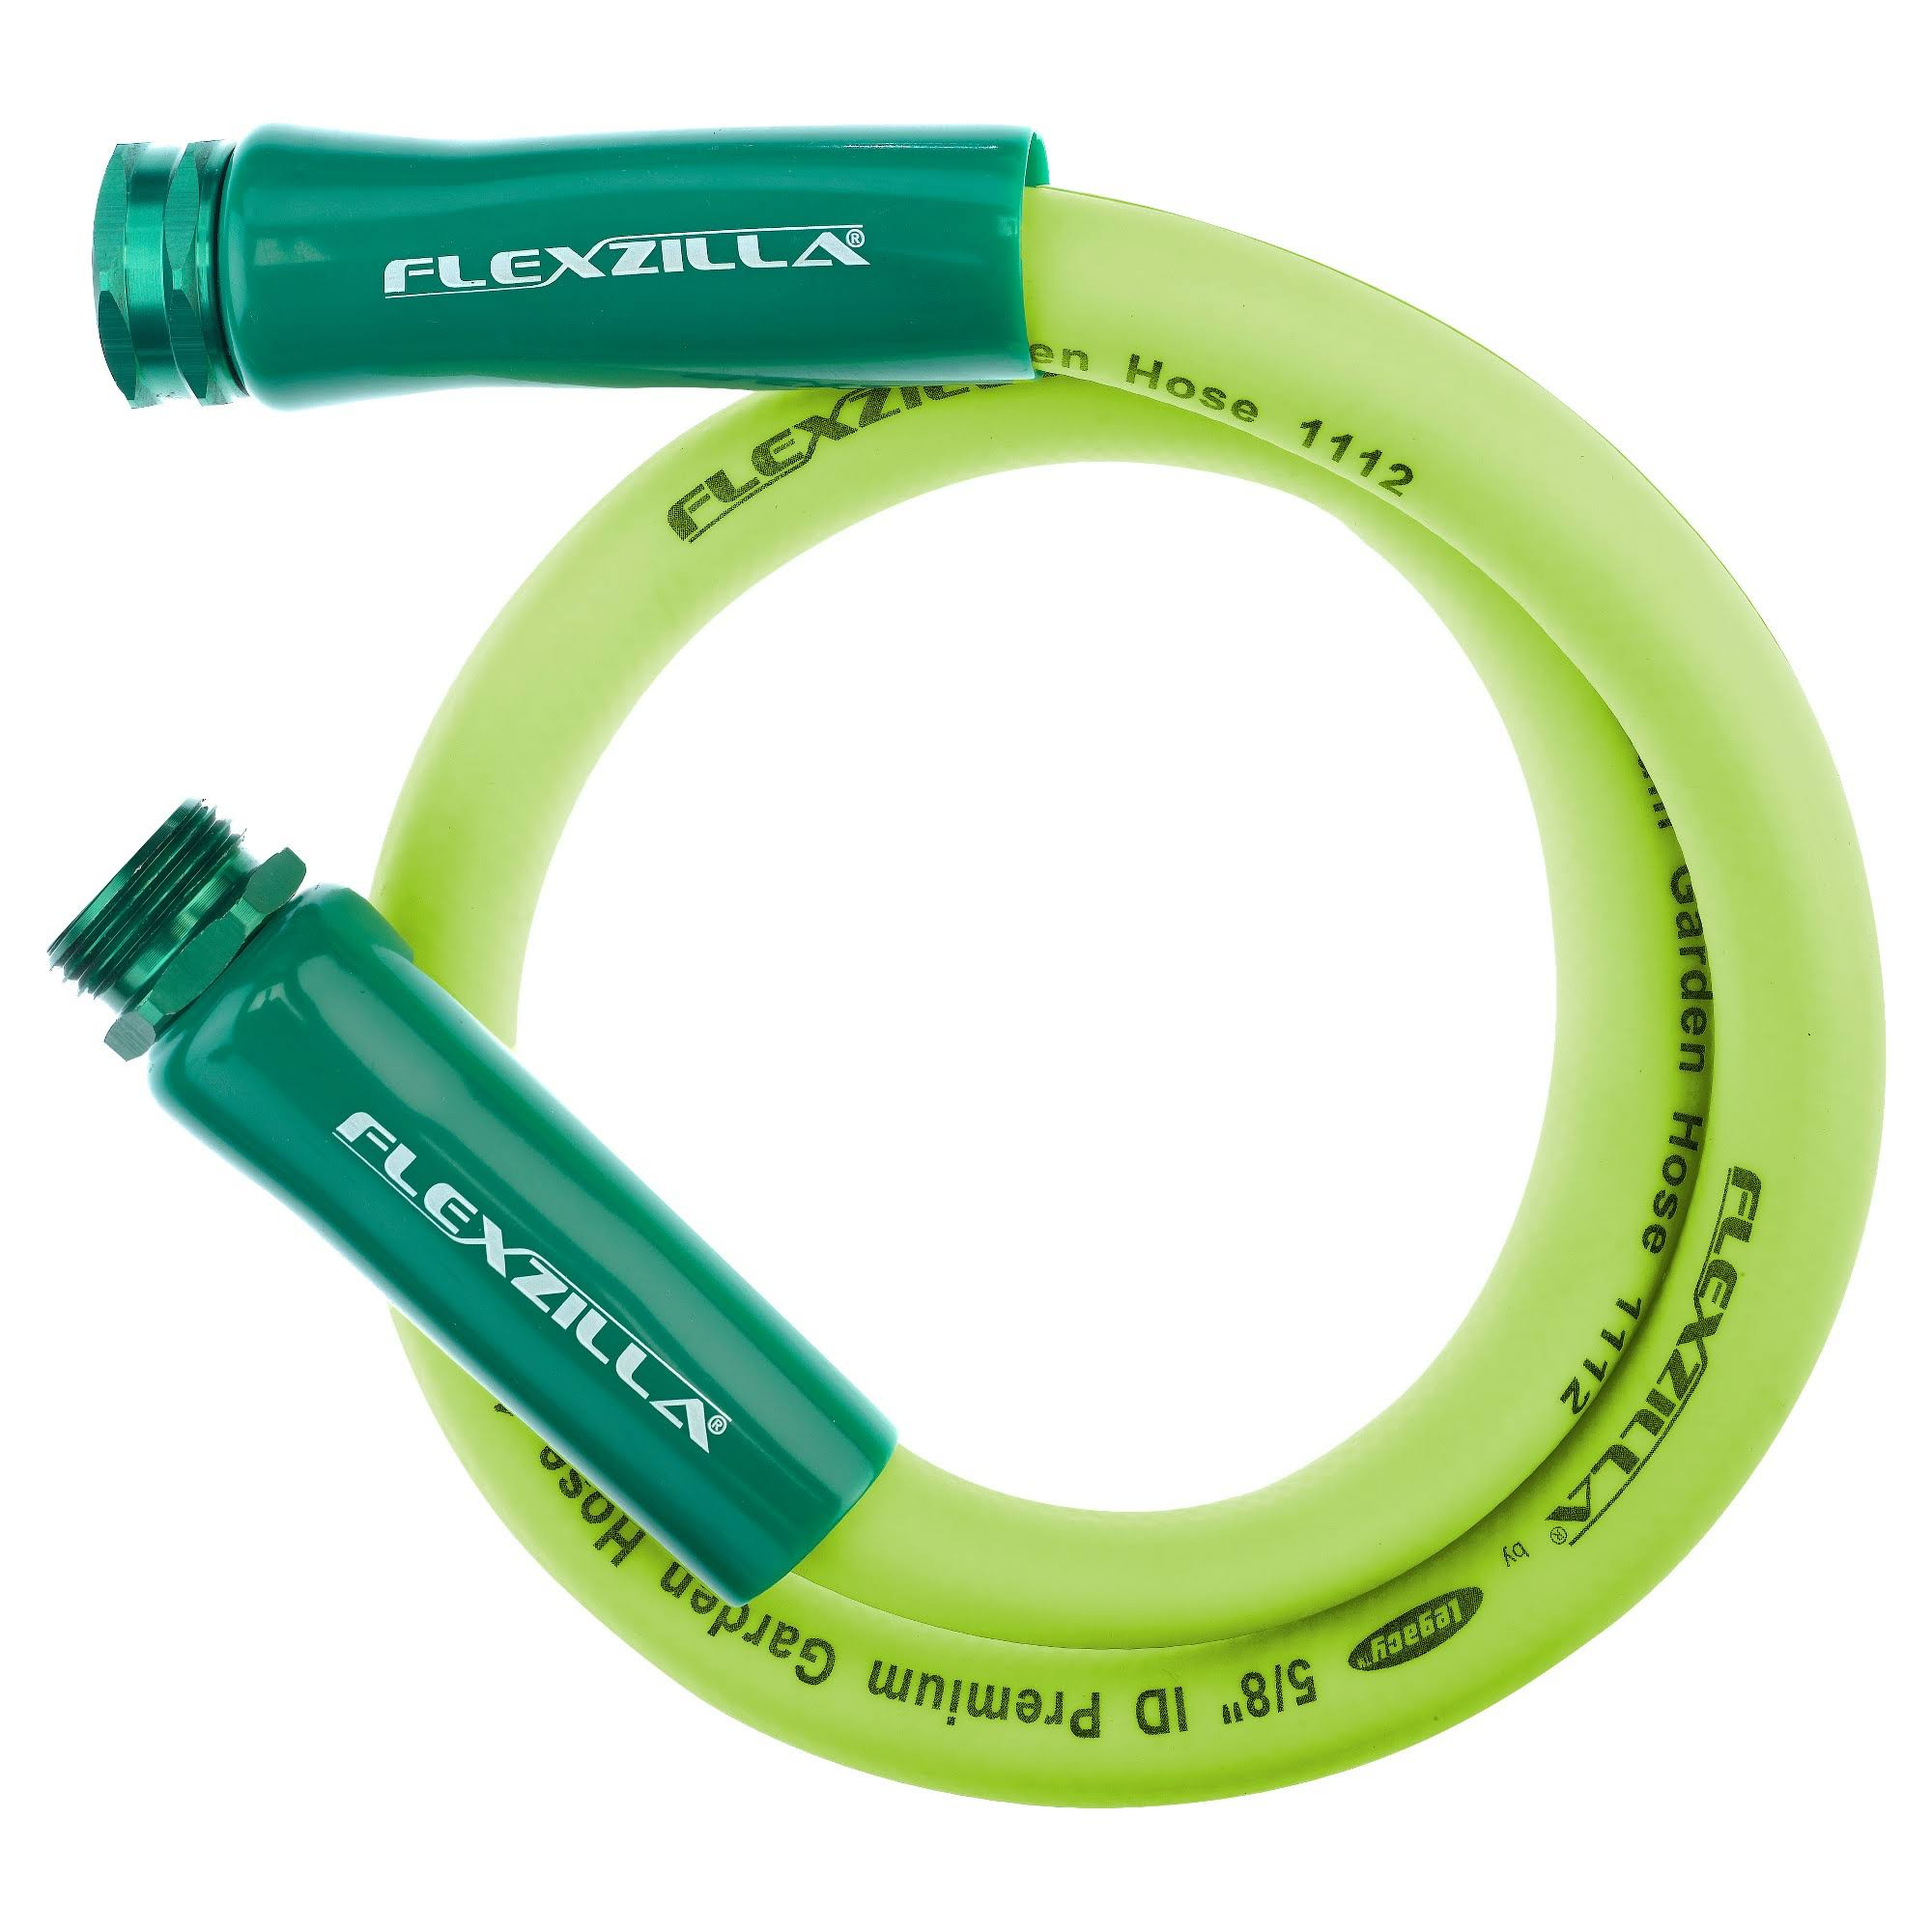 "Flexzilla HFZG503YW Flexzilla Water Whip Hose - with 3/4"" GHT Ends, 5/8"" x 3'"